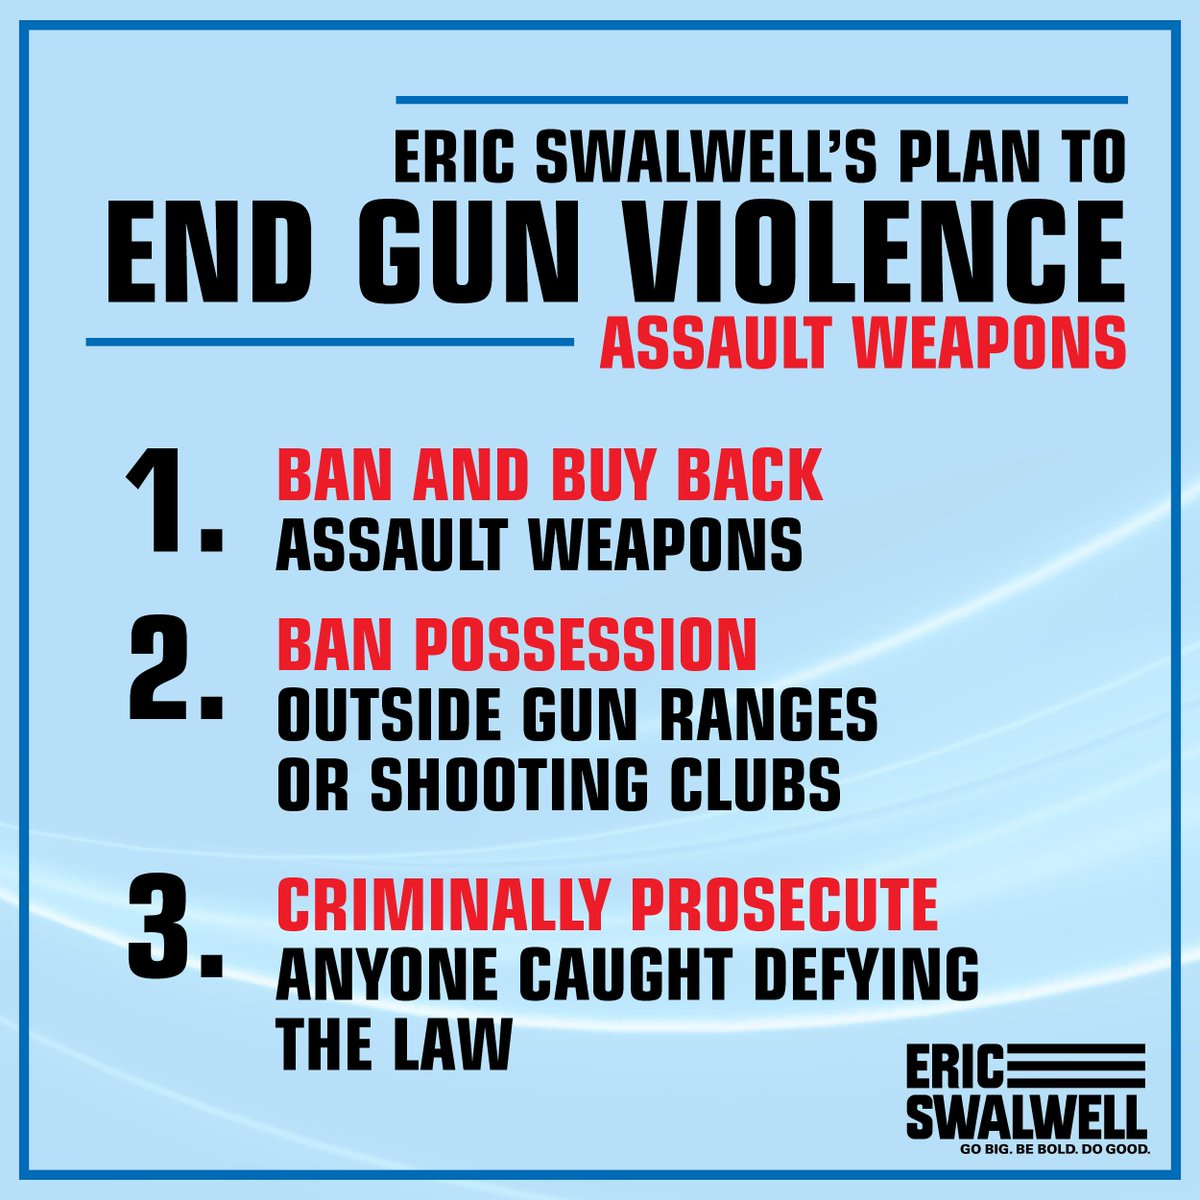 We need to keep the most dangerous guns out of the hands of he most dangerous people.  For our comprehensive plan, go to: http://ericswalwell.com/endgunviolence